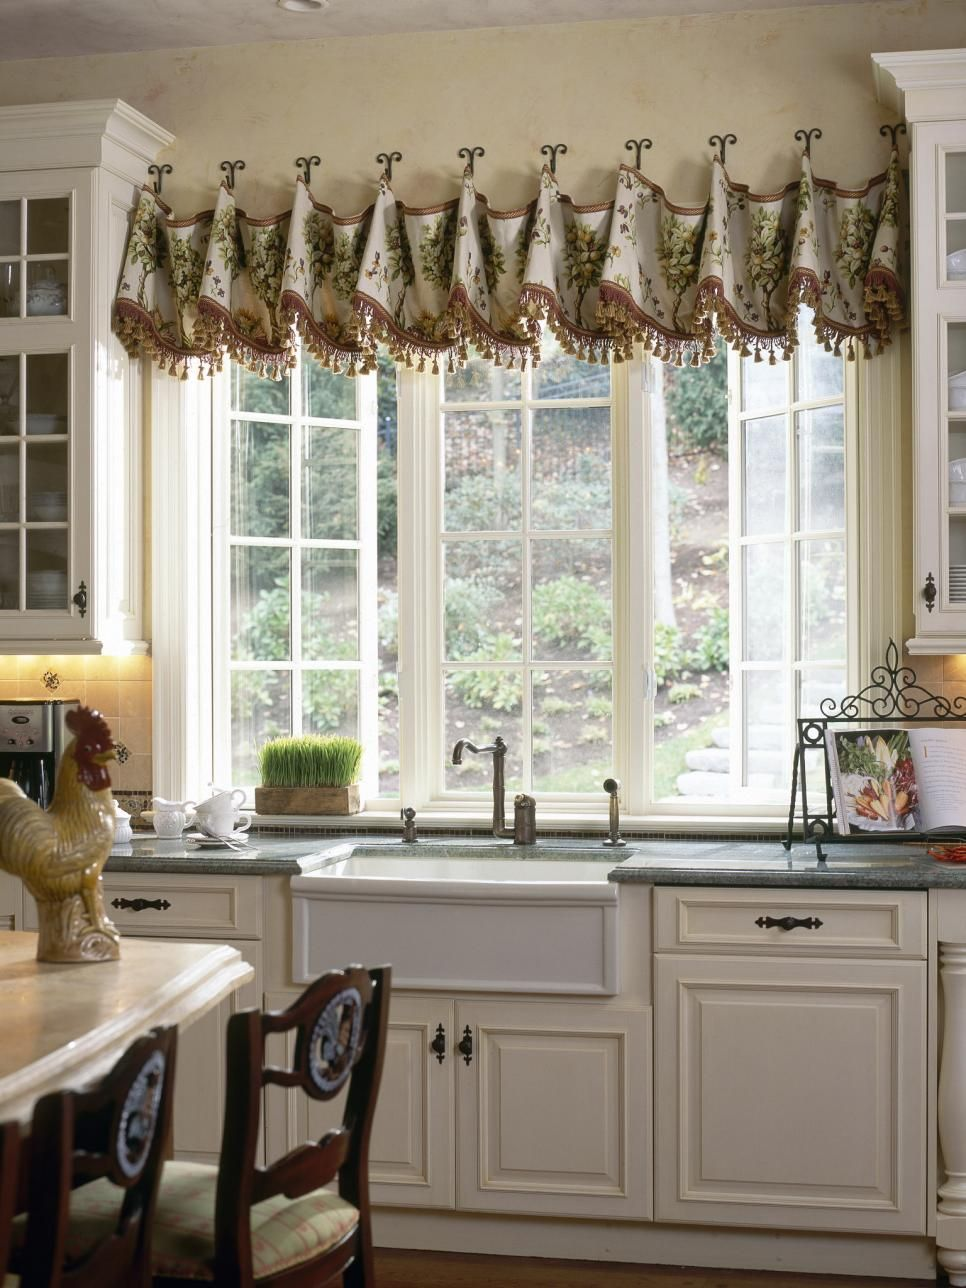 Superbe Looking To Add Style, Privacy And Light Control To Your Kitchen? Get  Inspired By These Chic Kitchen Window Shades And Valances Featured On  HGTV.com.